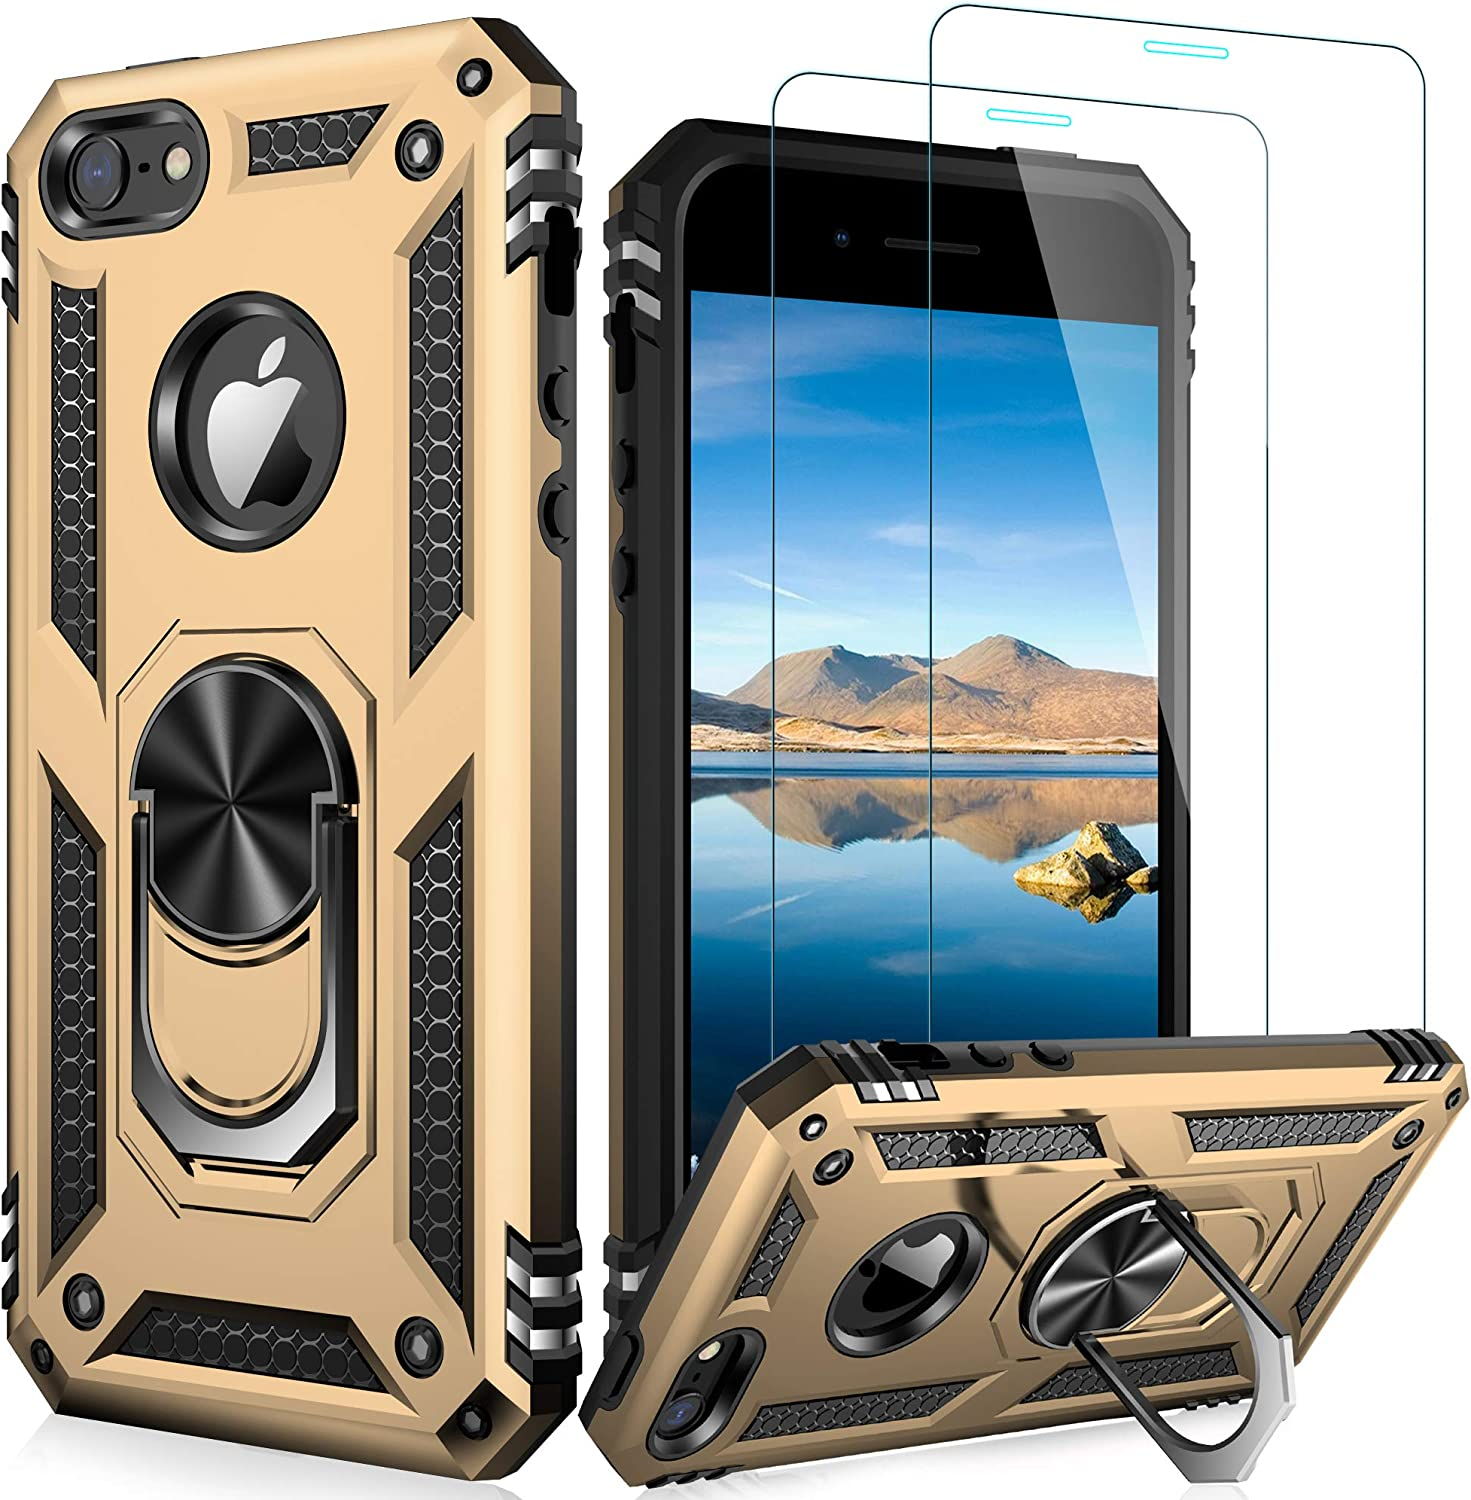 LUMARKE iPhone SE Case(2016),iPhone 5s Case,iPhone 5 Case with Tempered Glass Sreen Protector,Pass 16ft Drop Test Military Grade Cover Protective Phone Case for iPhone 5/5s/SE 2016 Gold